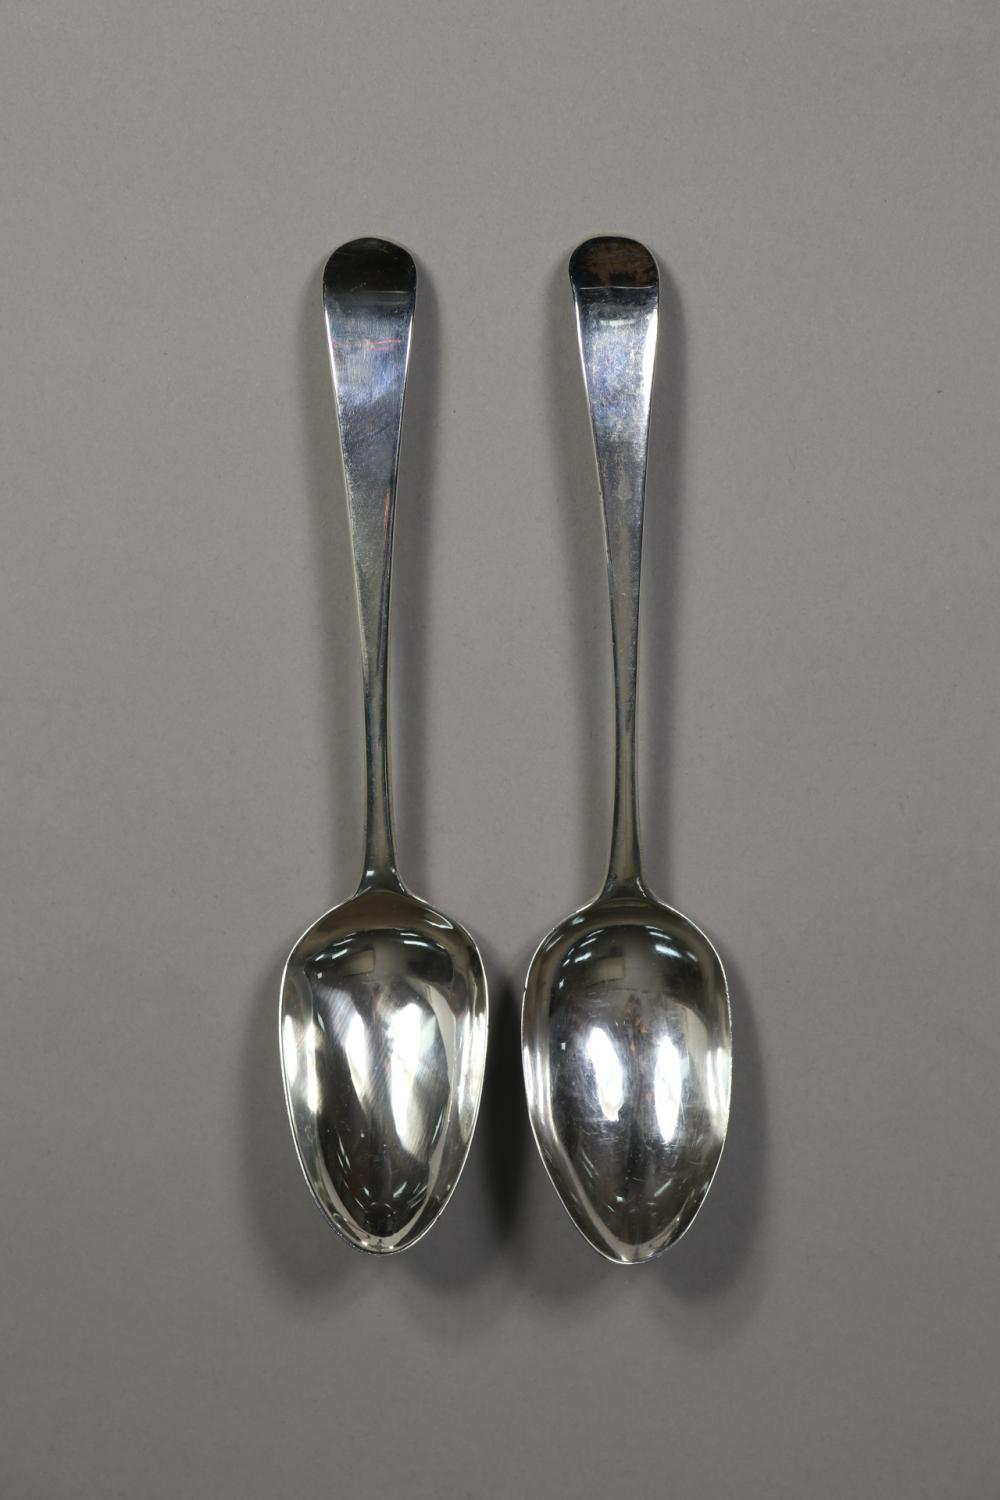 Two antique George III hallmarked sterling silver Old English pattern, London 1791 by Hester Bateman, approx 125 grams